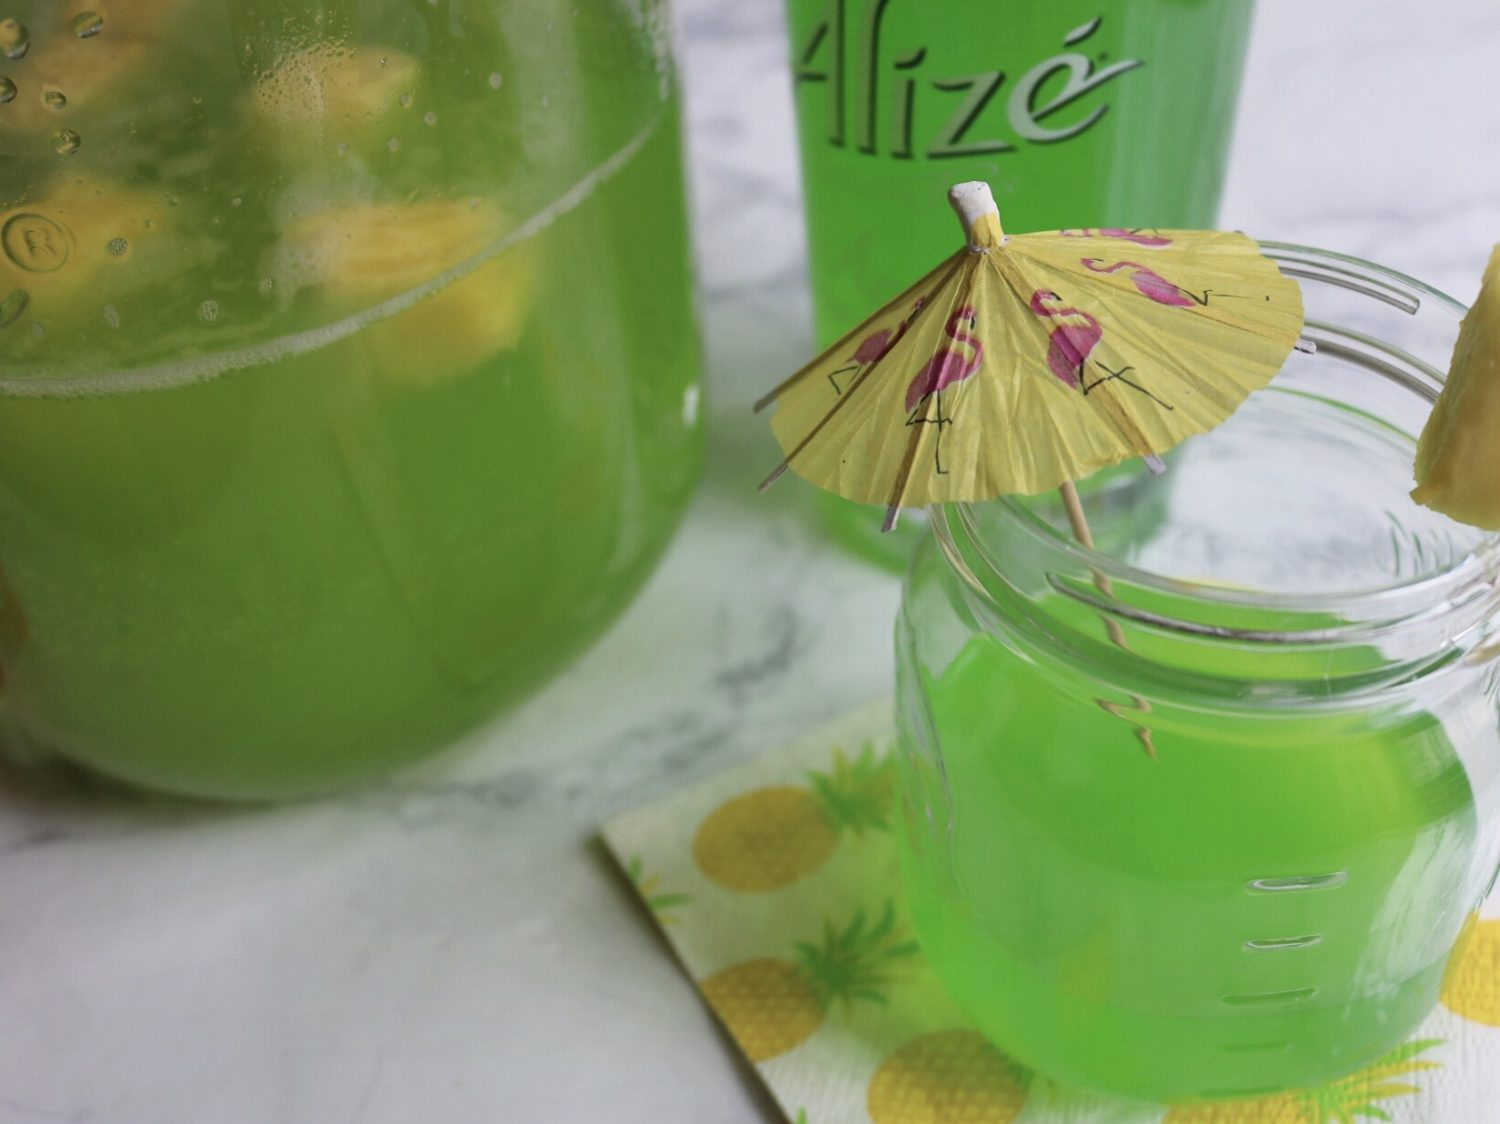 Alizé Apple Hawaiian Fizz Recipe